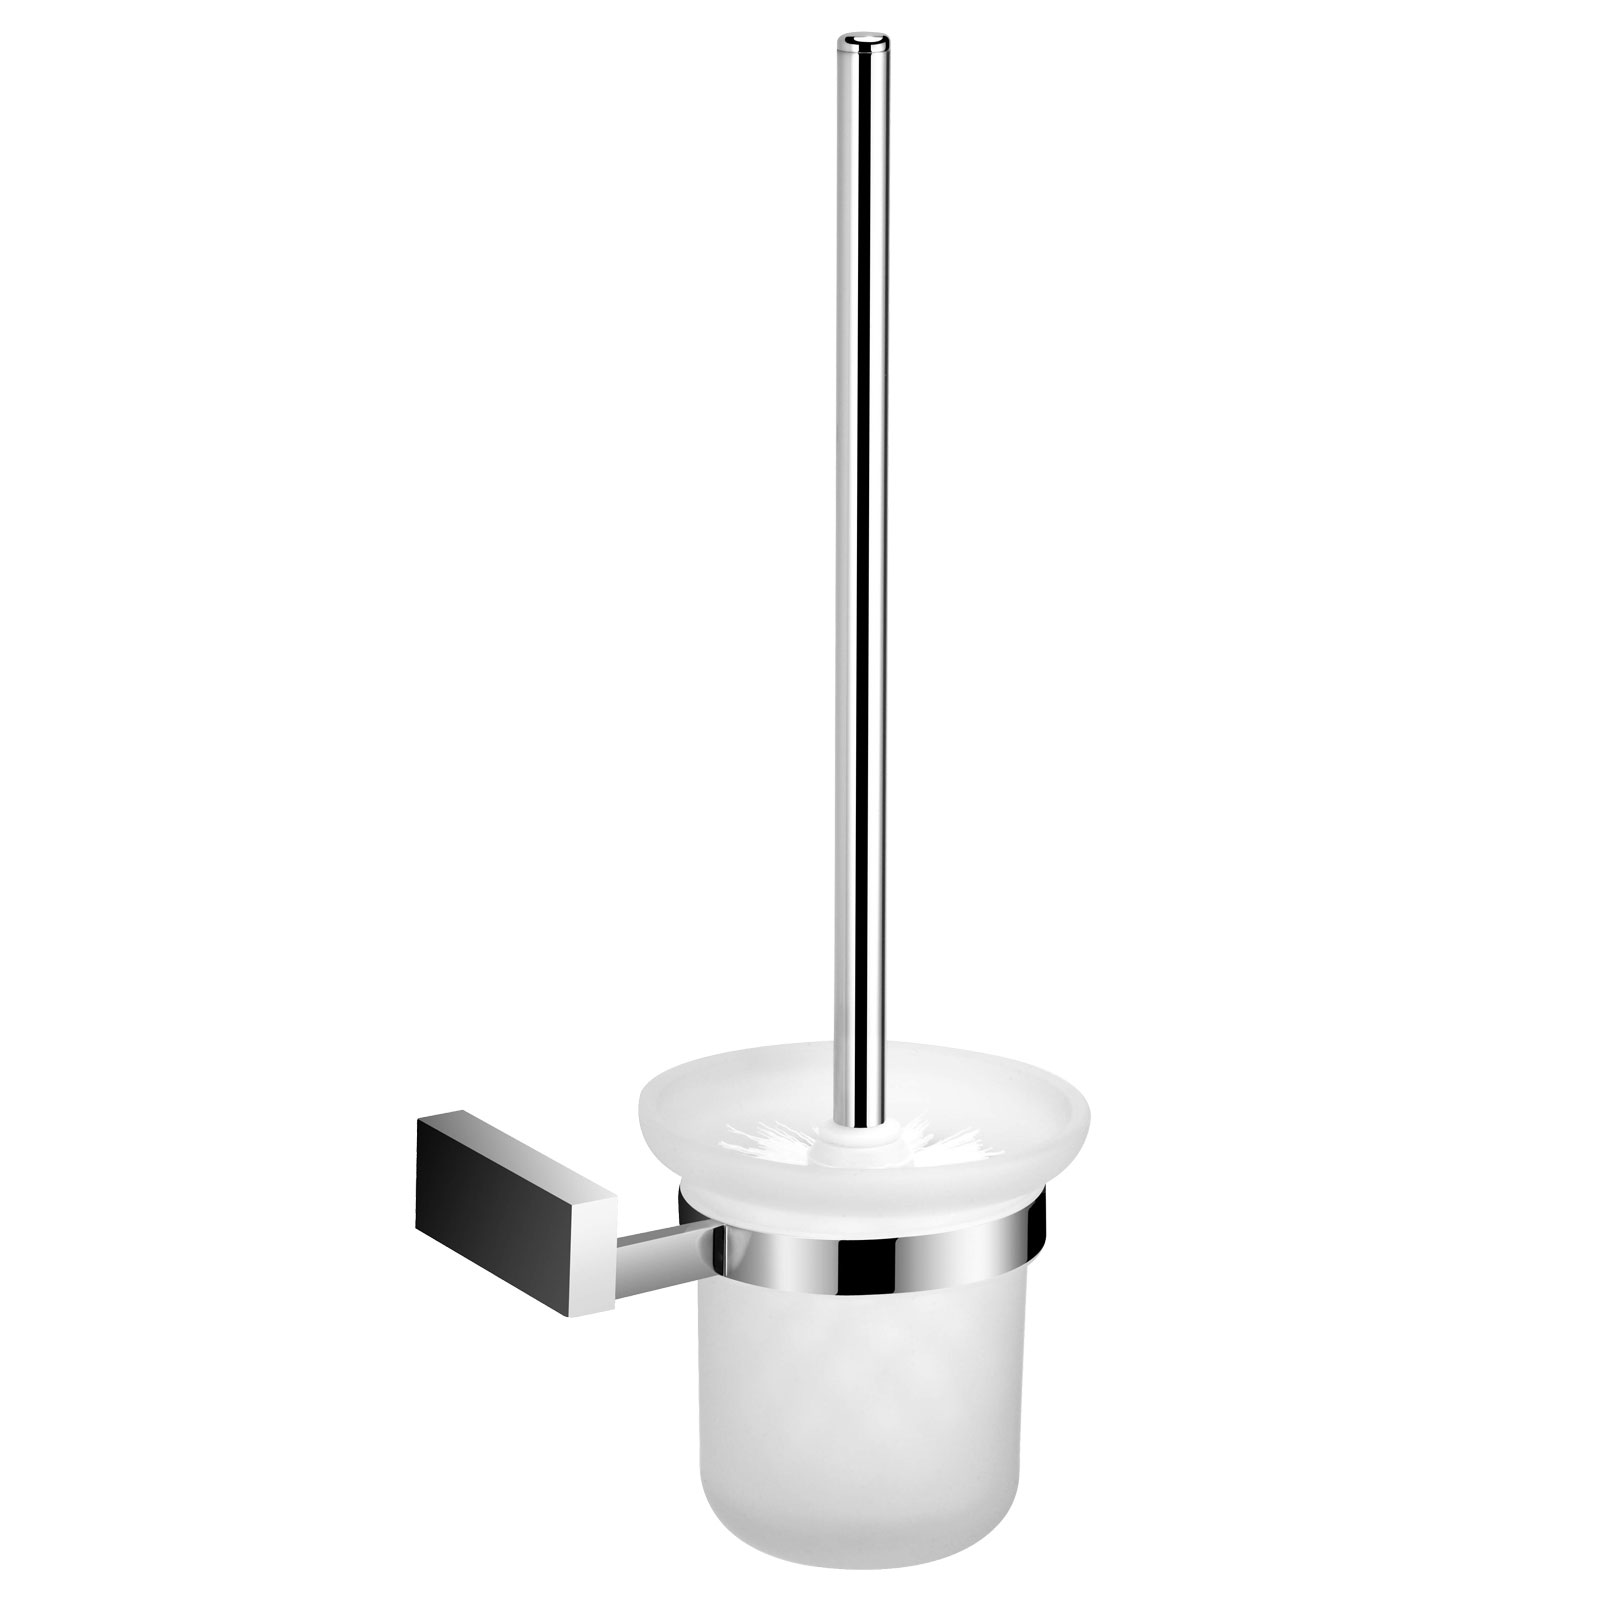 BATHROOM ACCESSORIES WALL MOUNTED CHROME GLASS SHELVES TOILET BRUSH ...